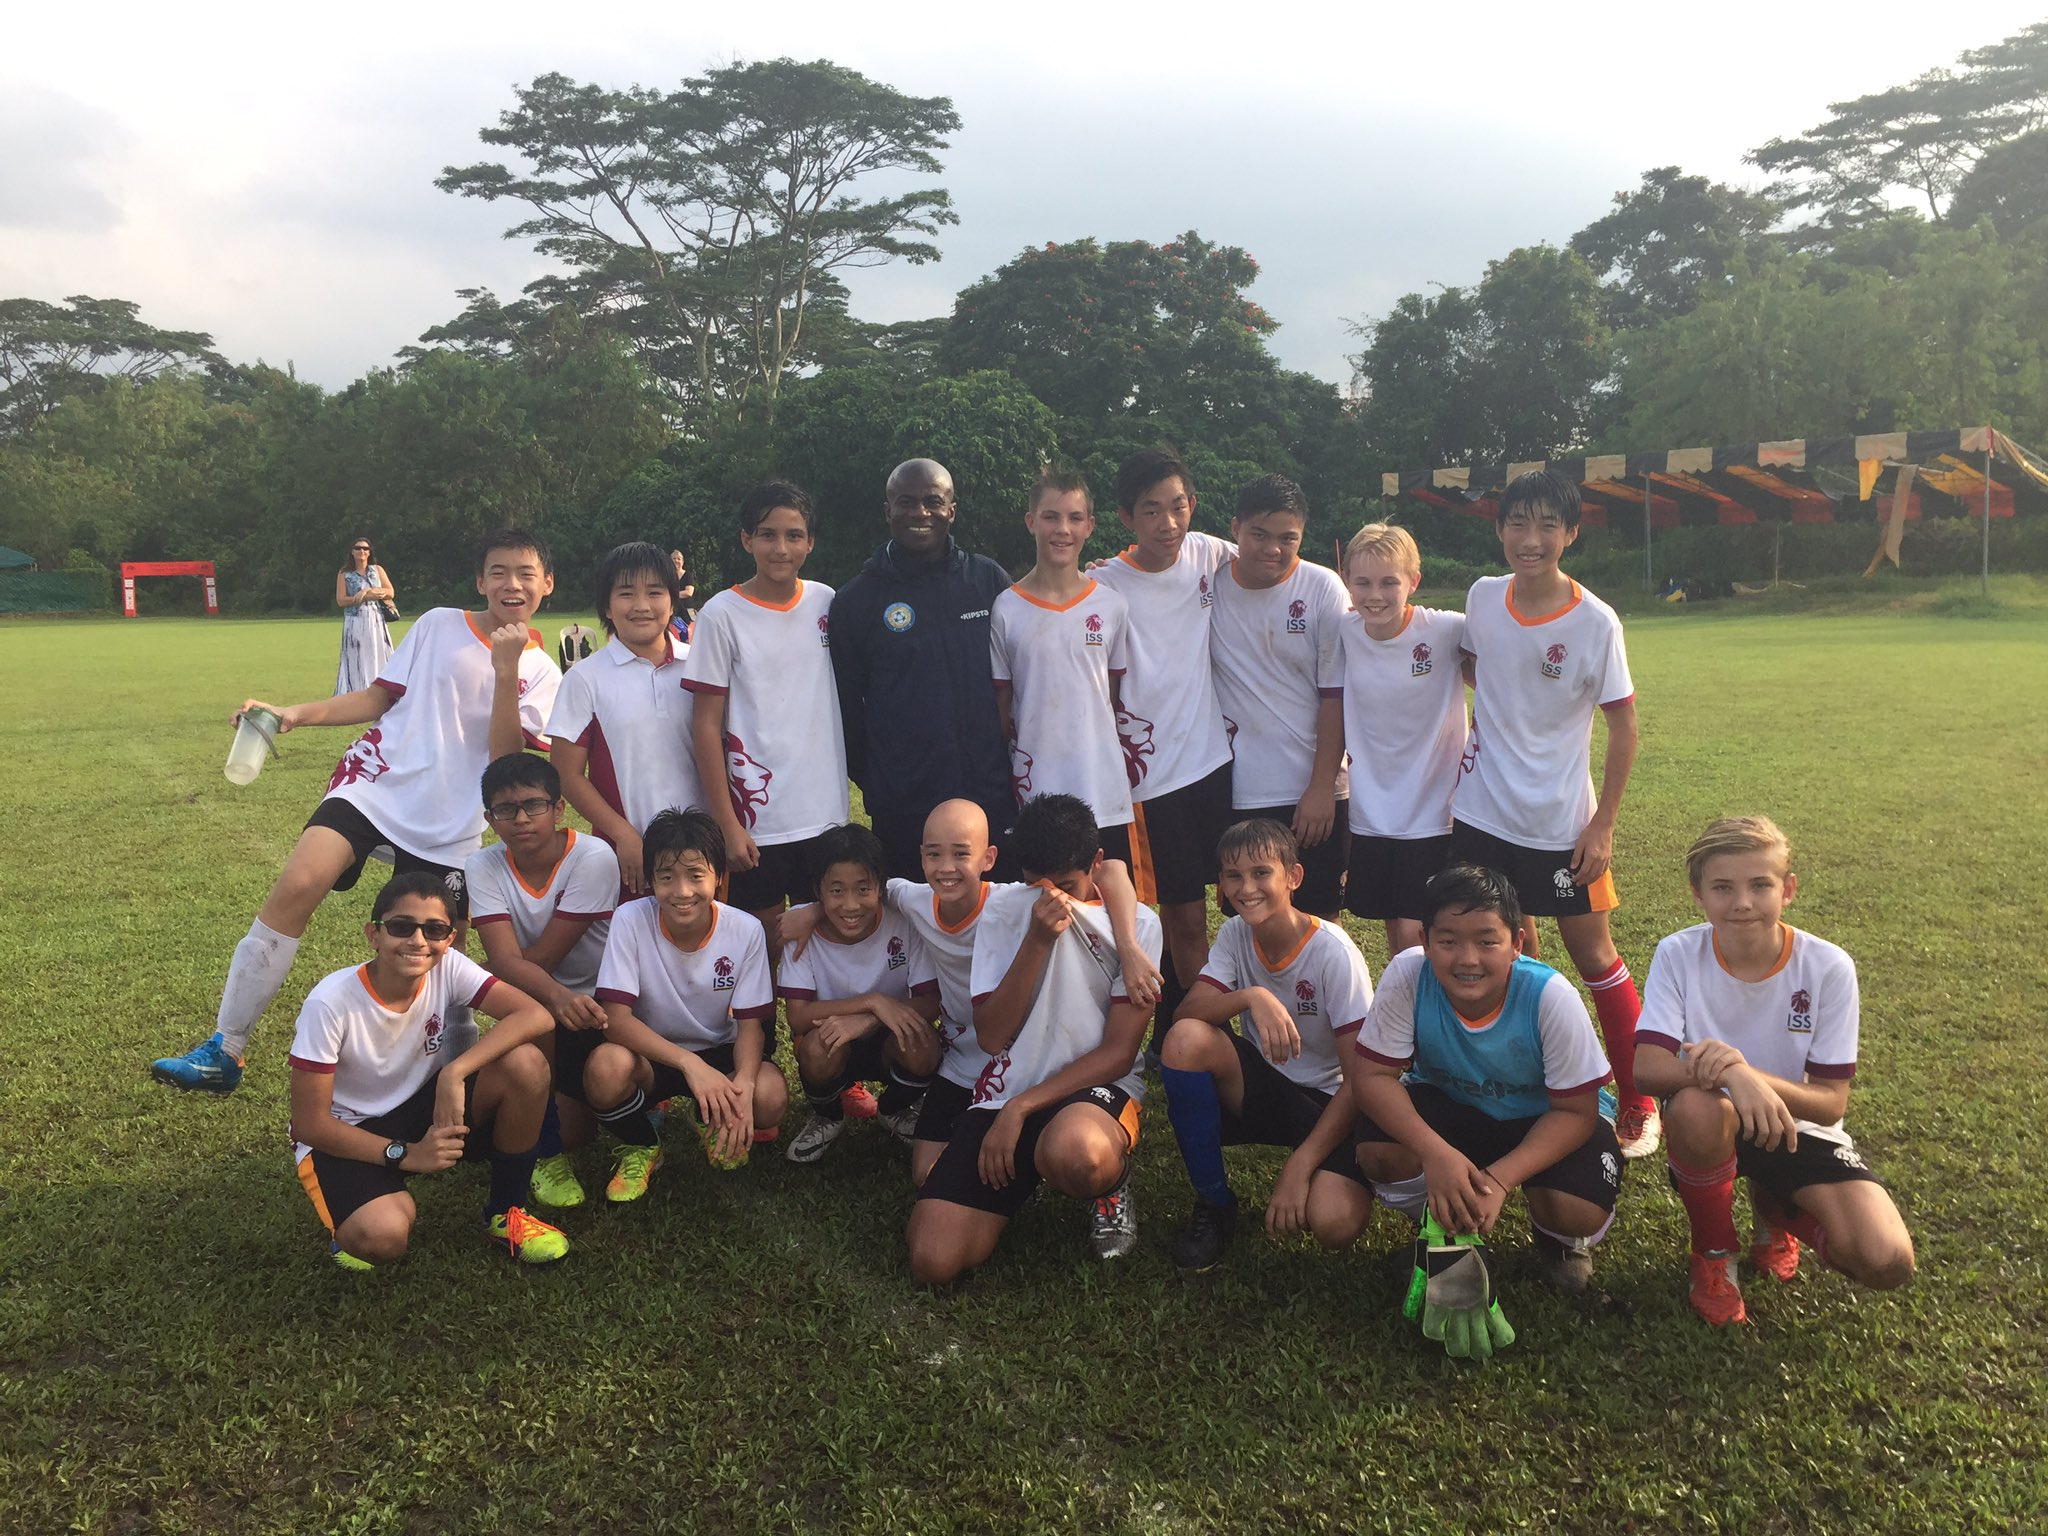 Congratulations to U14 MS Soccer team who finished their season off with a 7-1 win against Chatsworth #isspride ⚽️⚽️⚽️ https://t.co/UtKenQvdTr